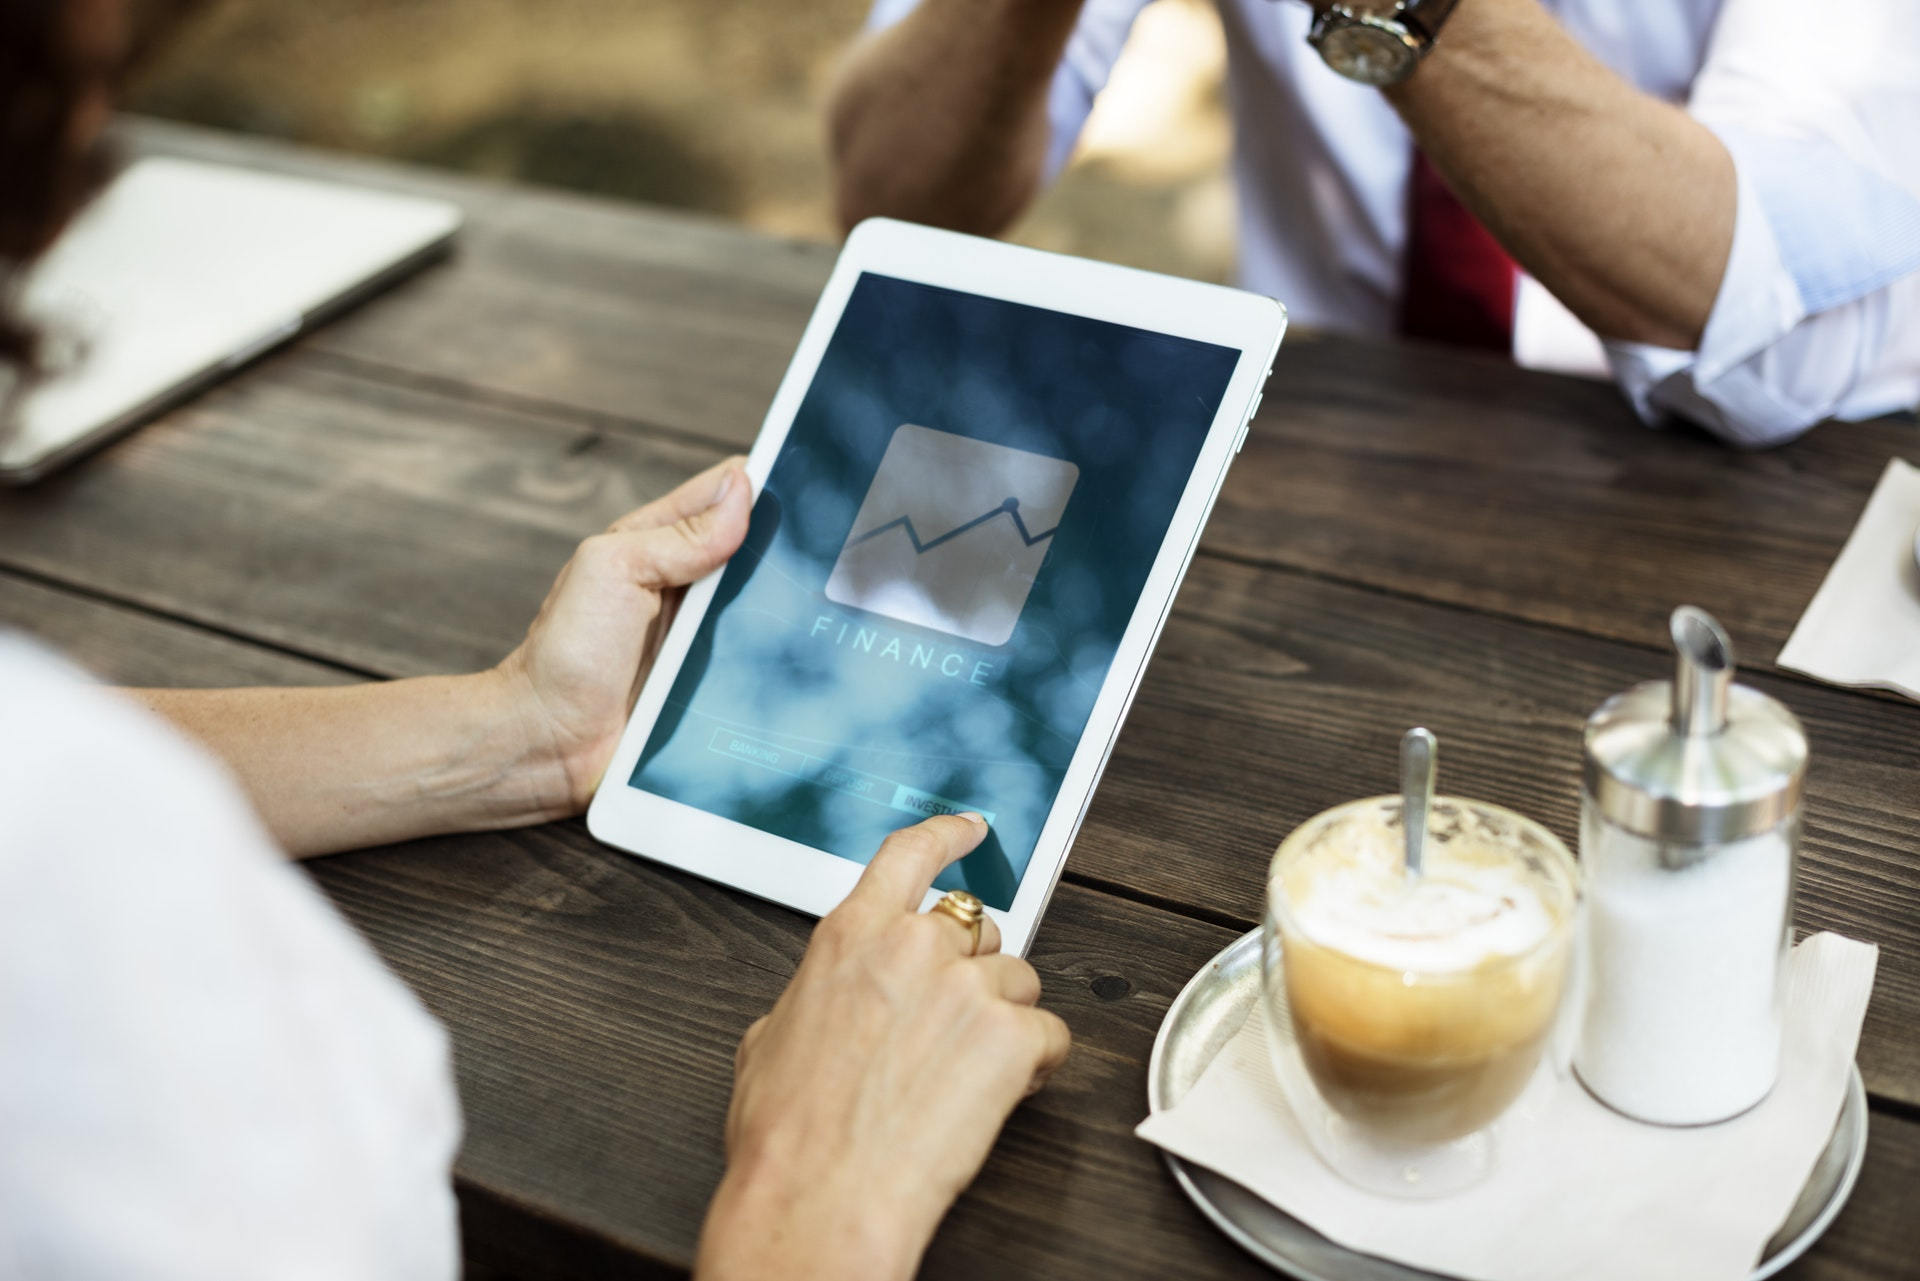 Guide to going digital for financial services firms